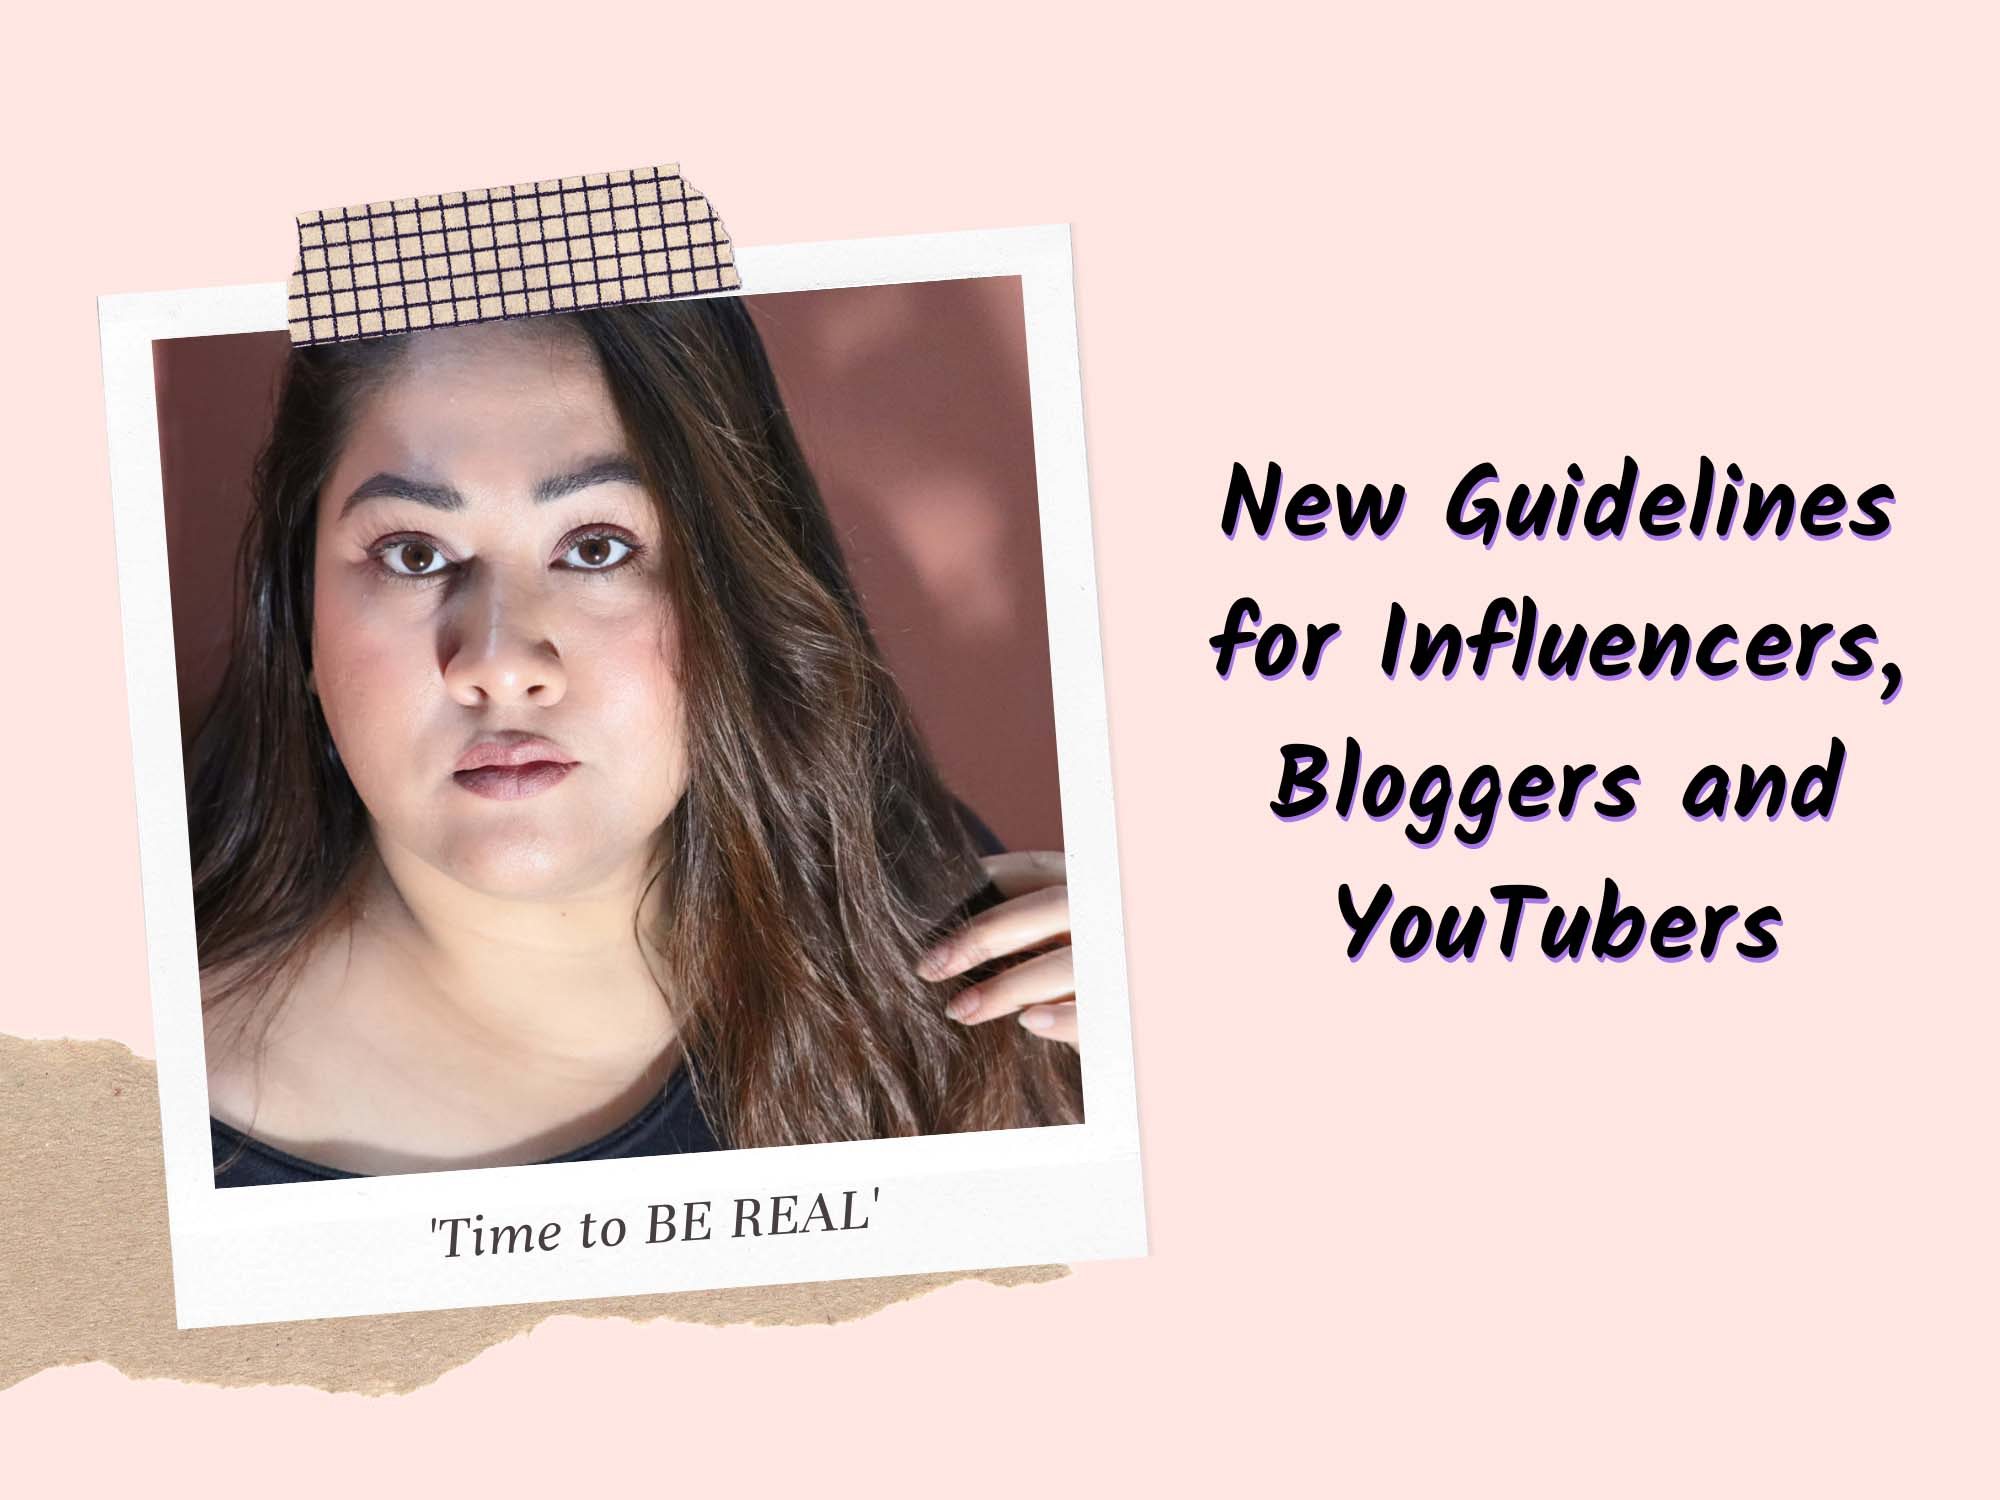 New Guidelines for Indian Social Media Influencers, Bloggers and YouTubers